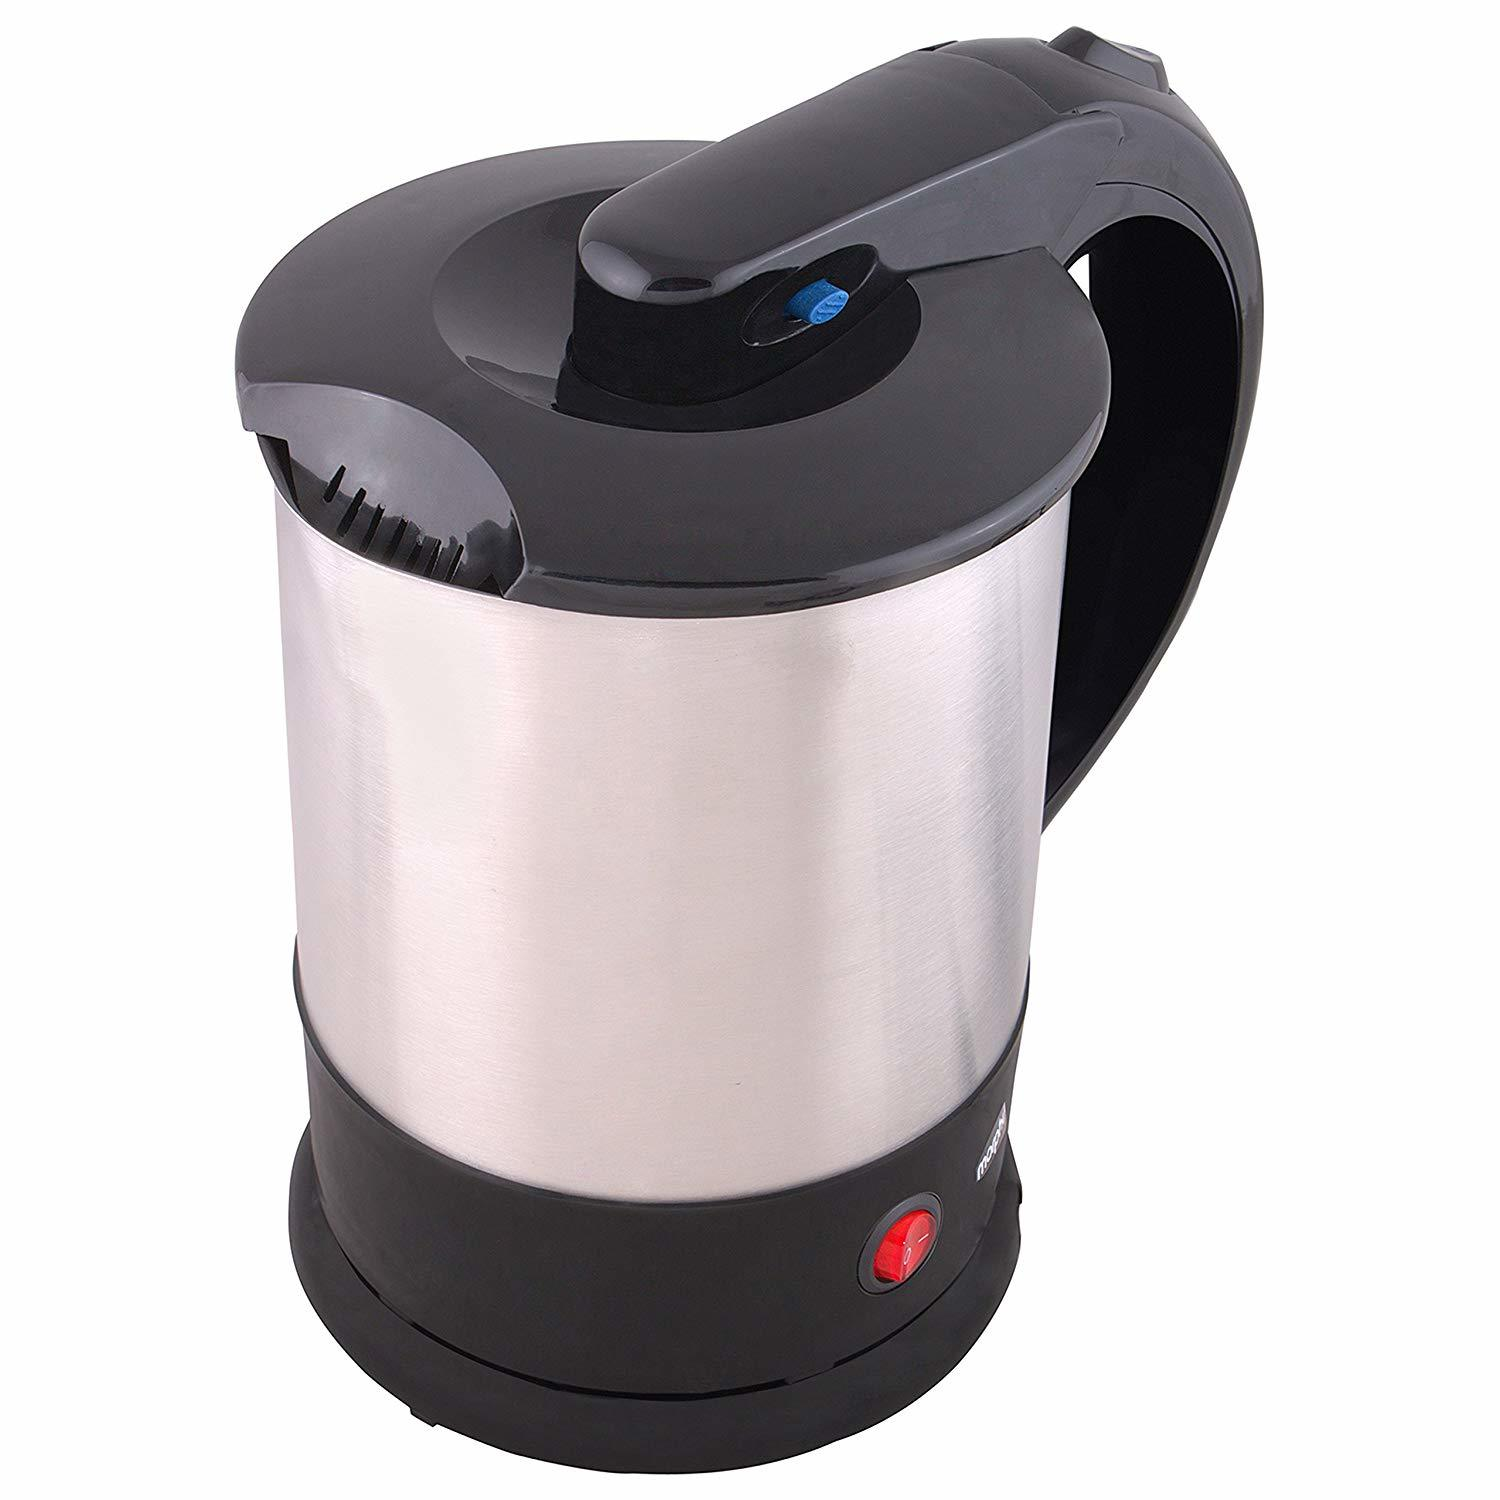 Morphy Richards 1.5-Litre (1850+350) Watt Stainless Steel Tea Maker